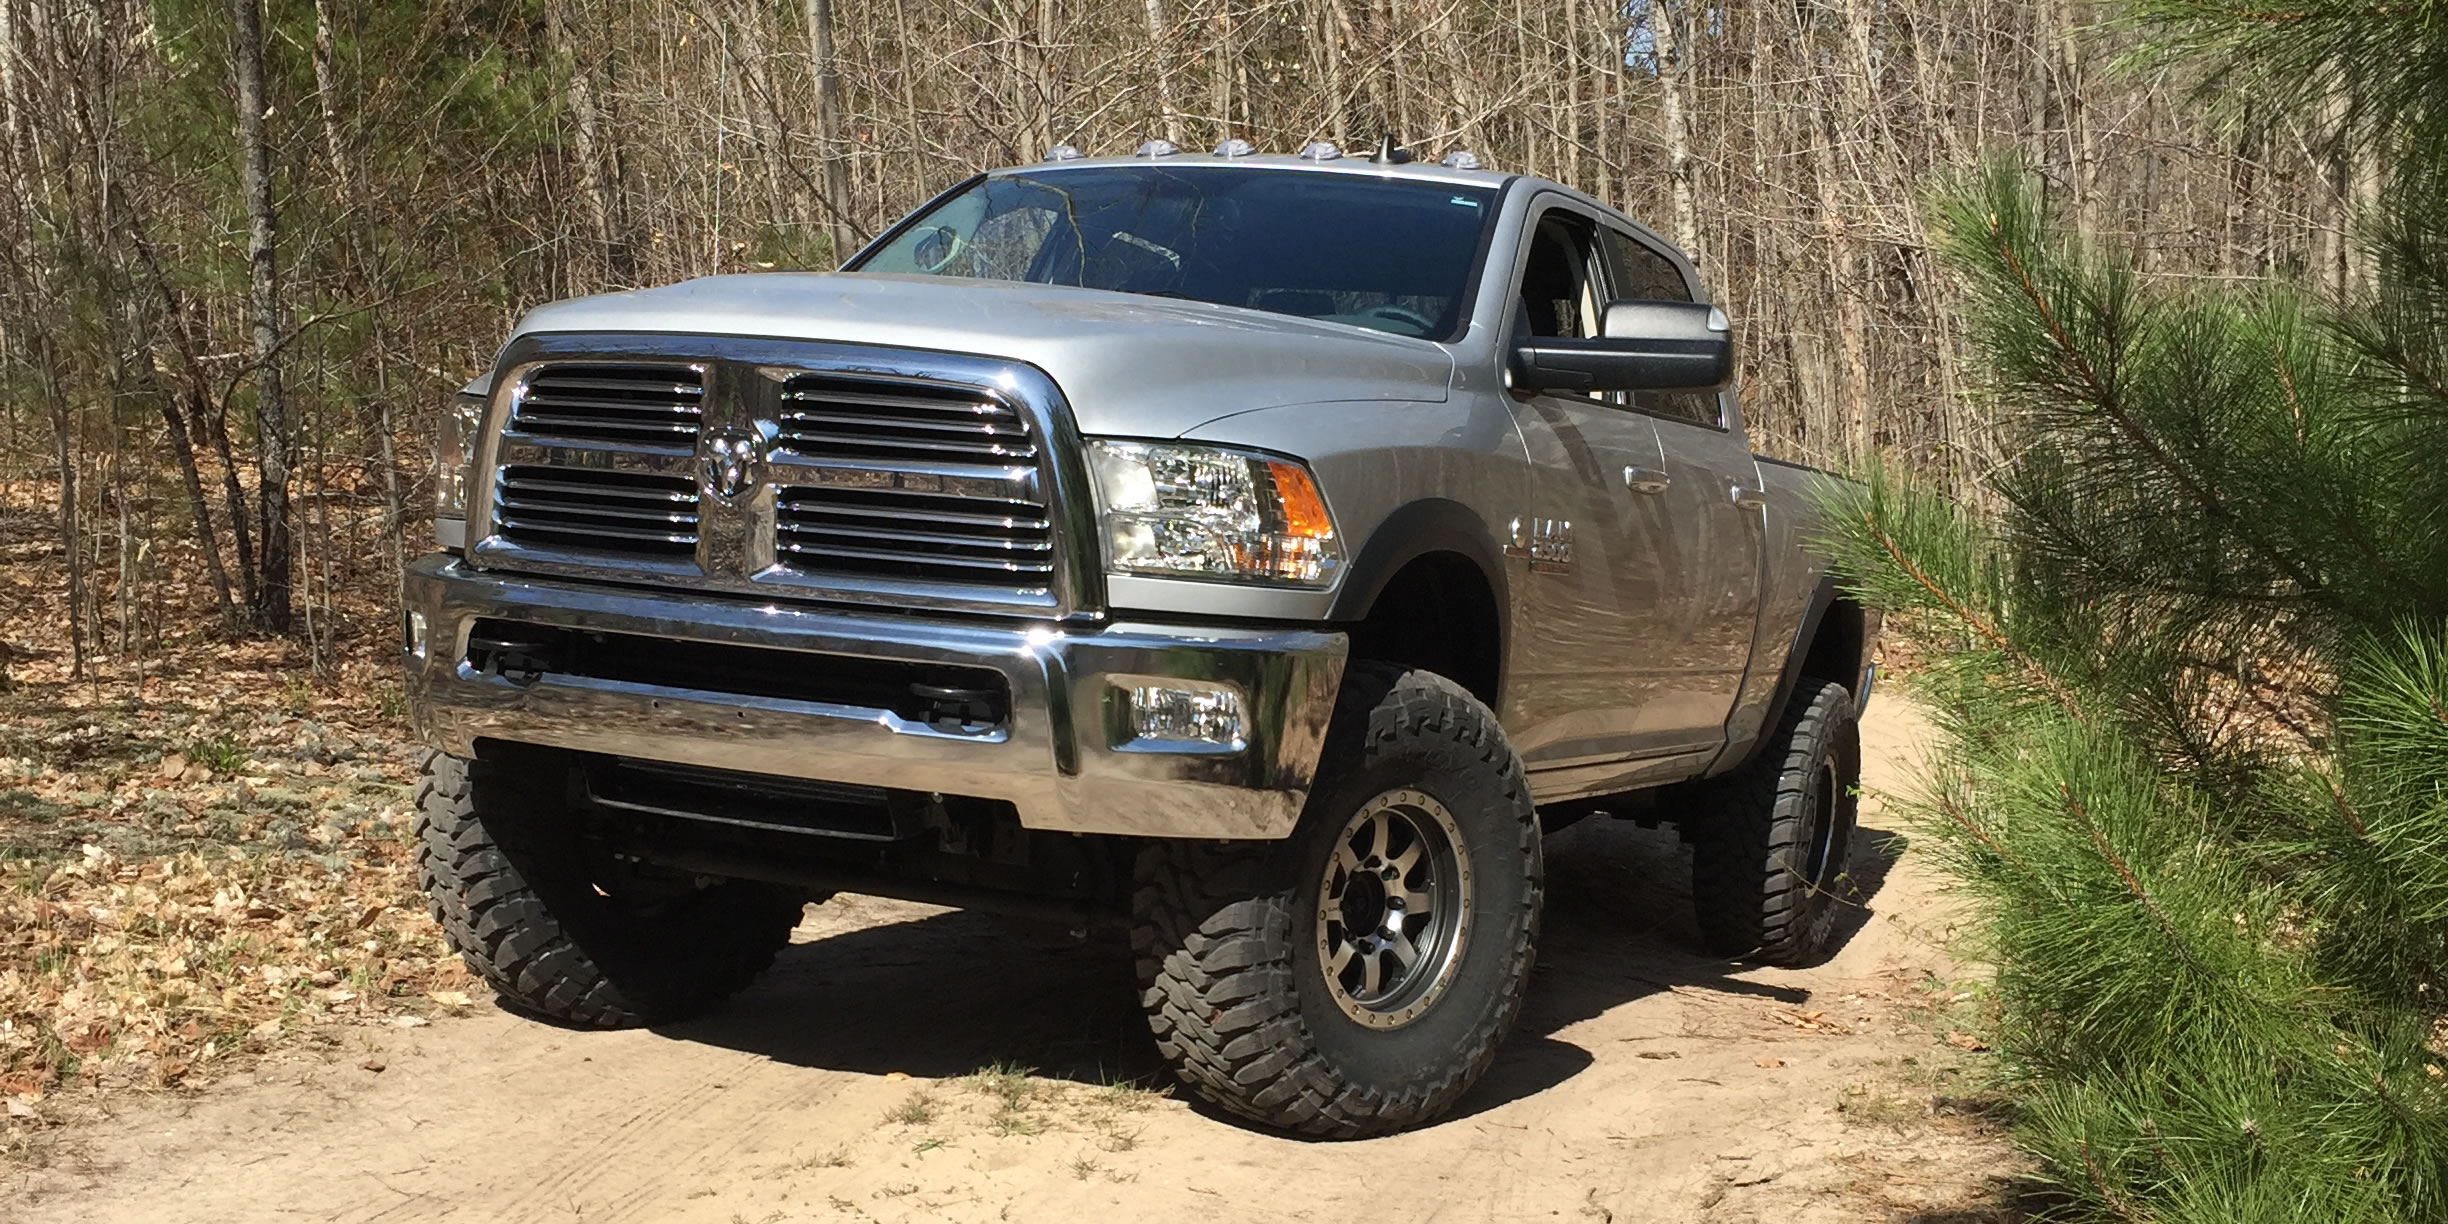 2014 Dodge Ram 8LUG Edition